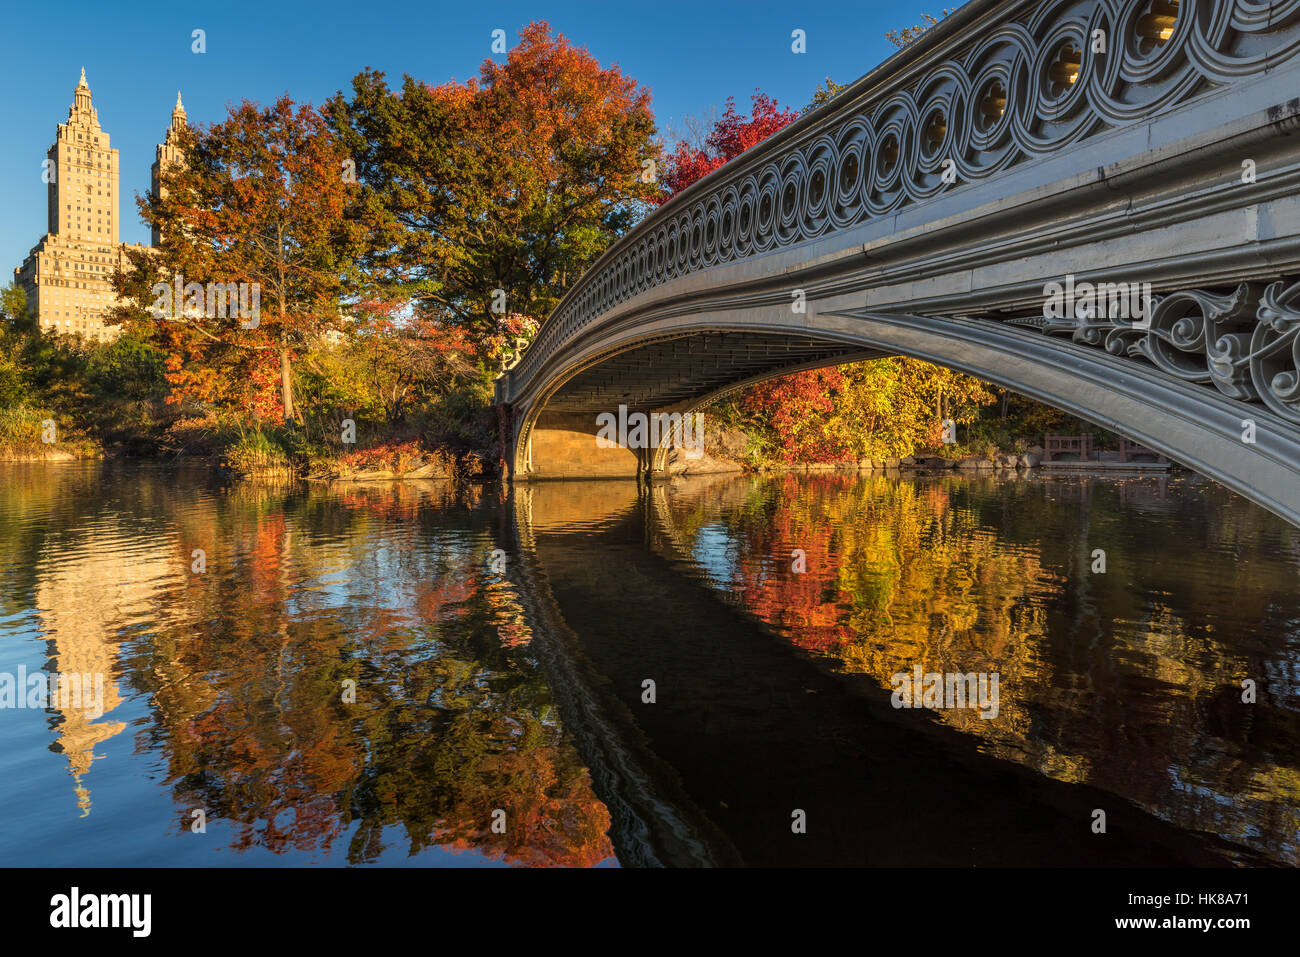 Fall in Central Park at The Lake with the Bow Bridge. Morning view with colorful Autumn foliage on the Upper West - Stock Image